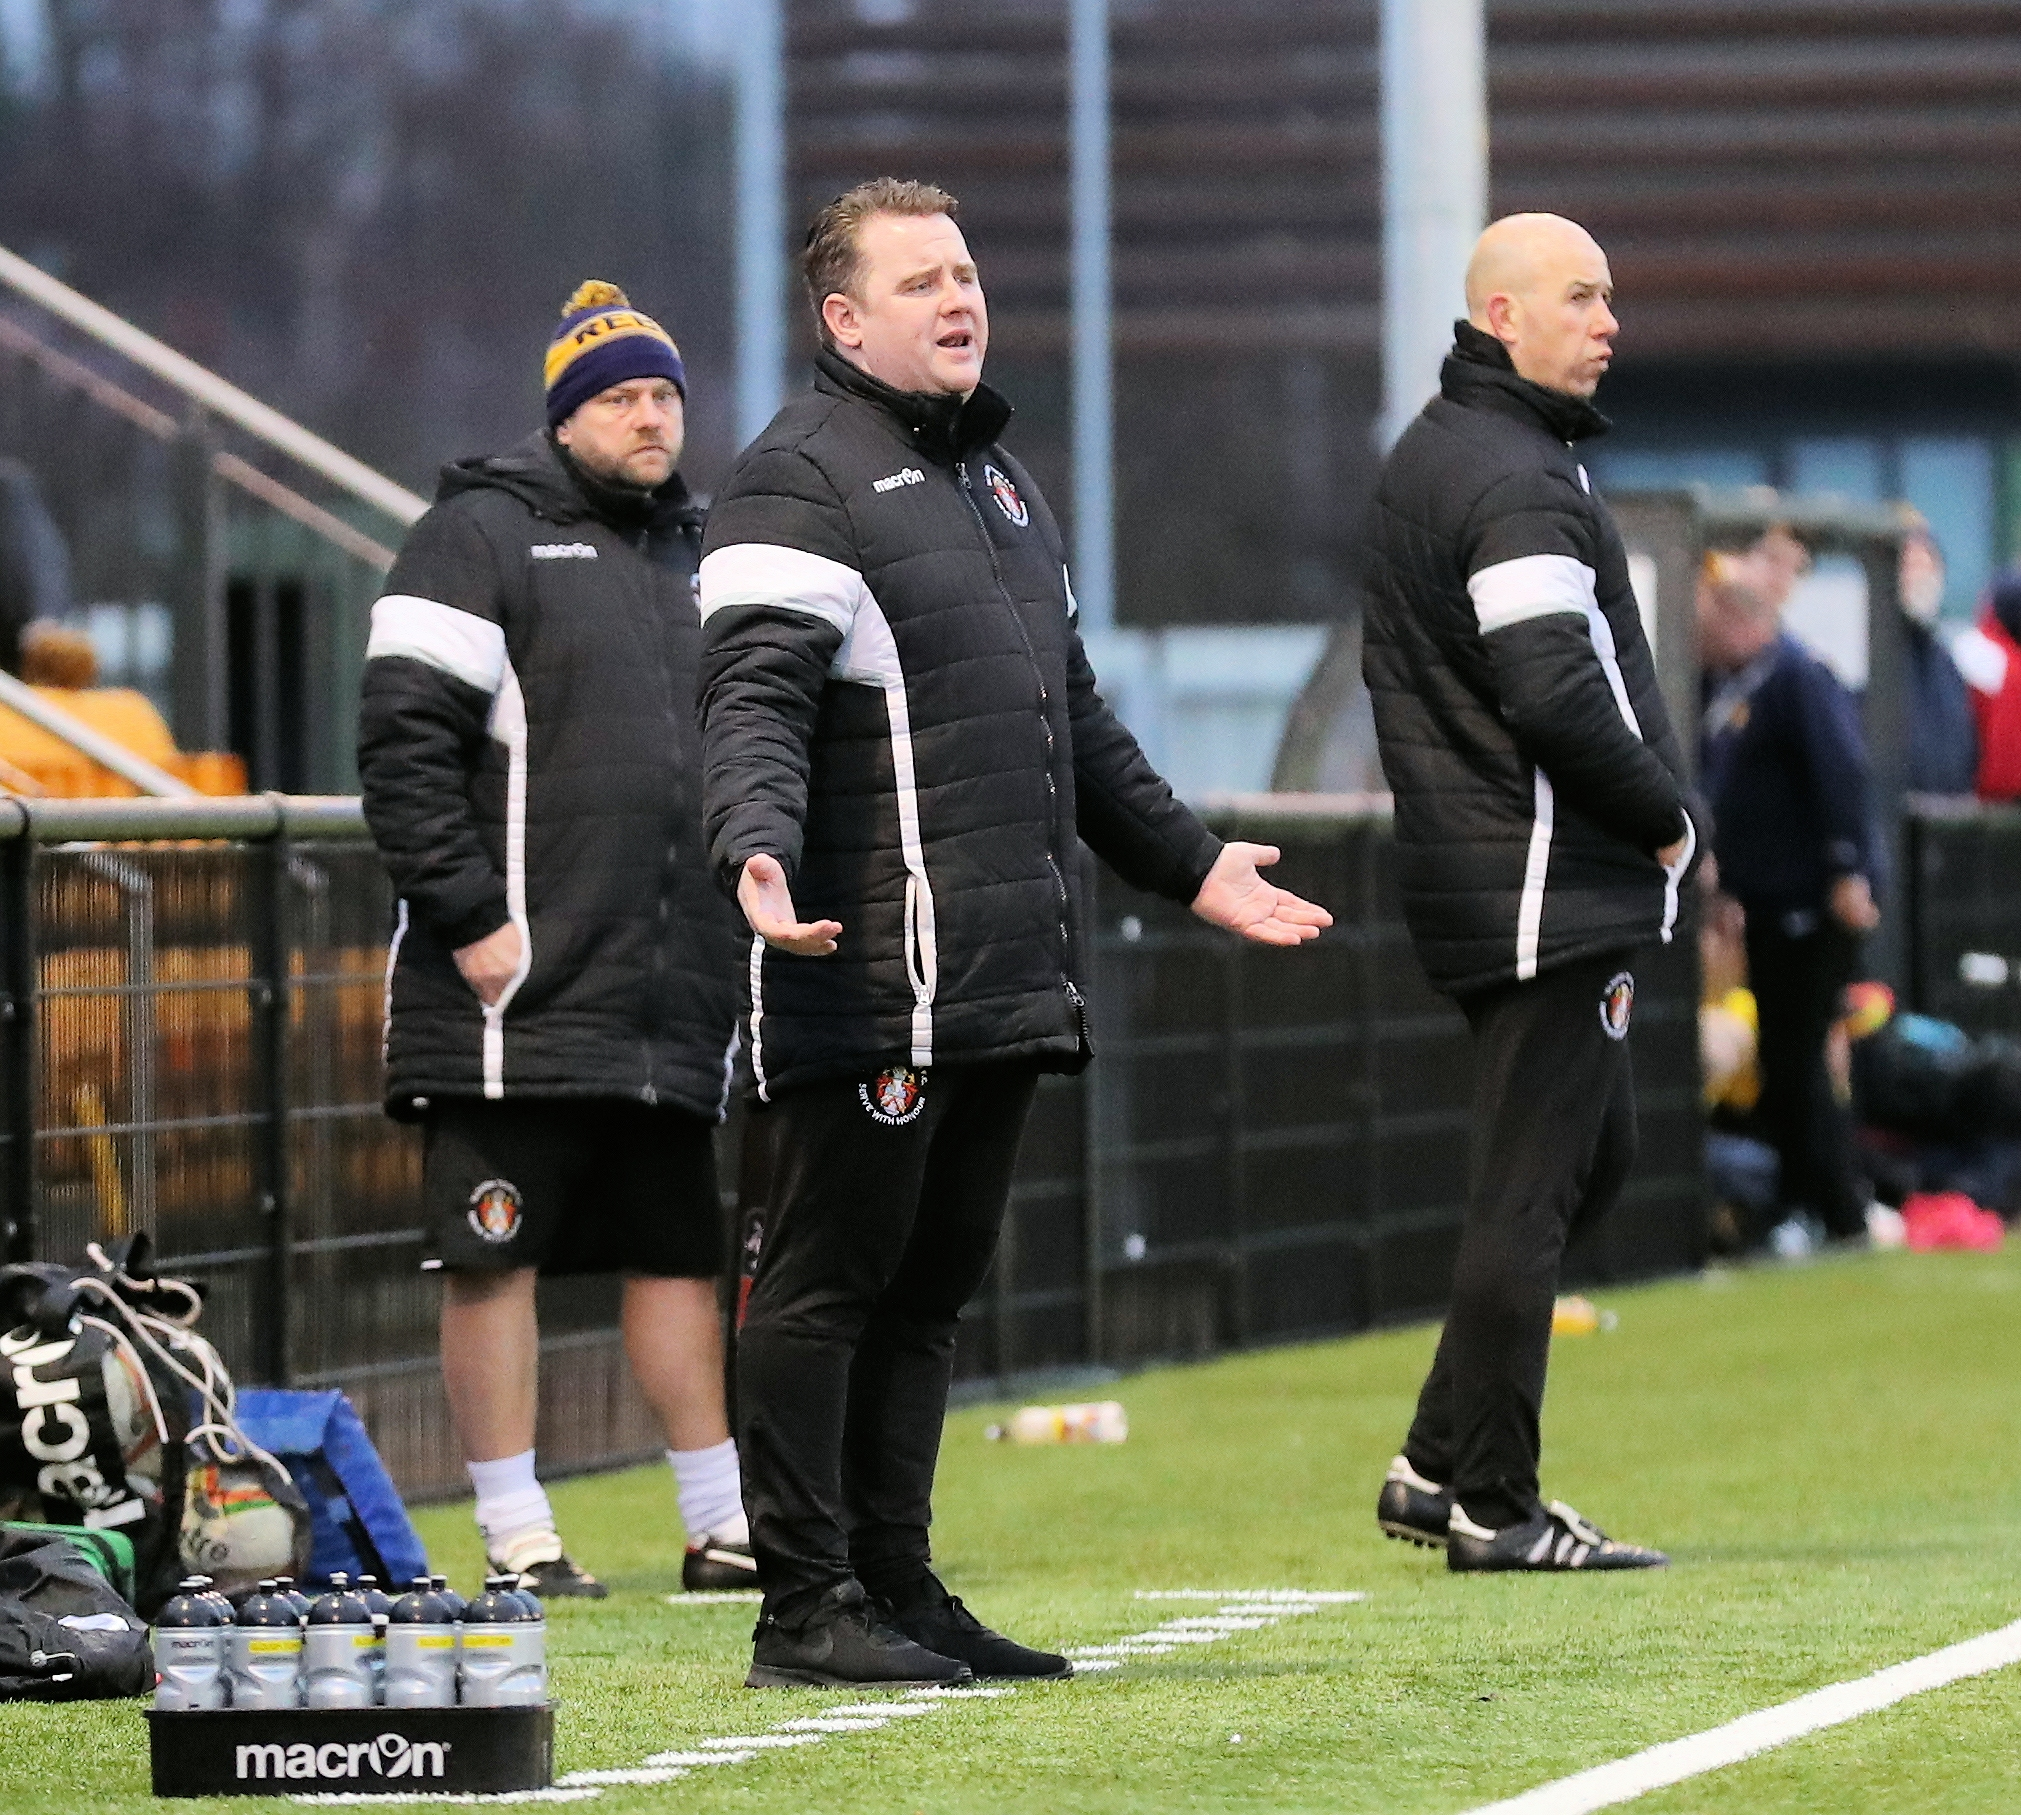 (l-r) Slough Town coach Trent Phillips plus joint-managers Neil Baker and Jon Underwood saw their side lose 1-0 to Banbury United on Saturday. PHOTO: Gary House Photography.